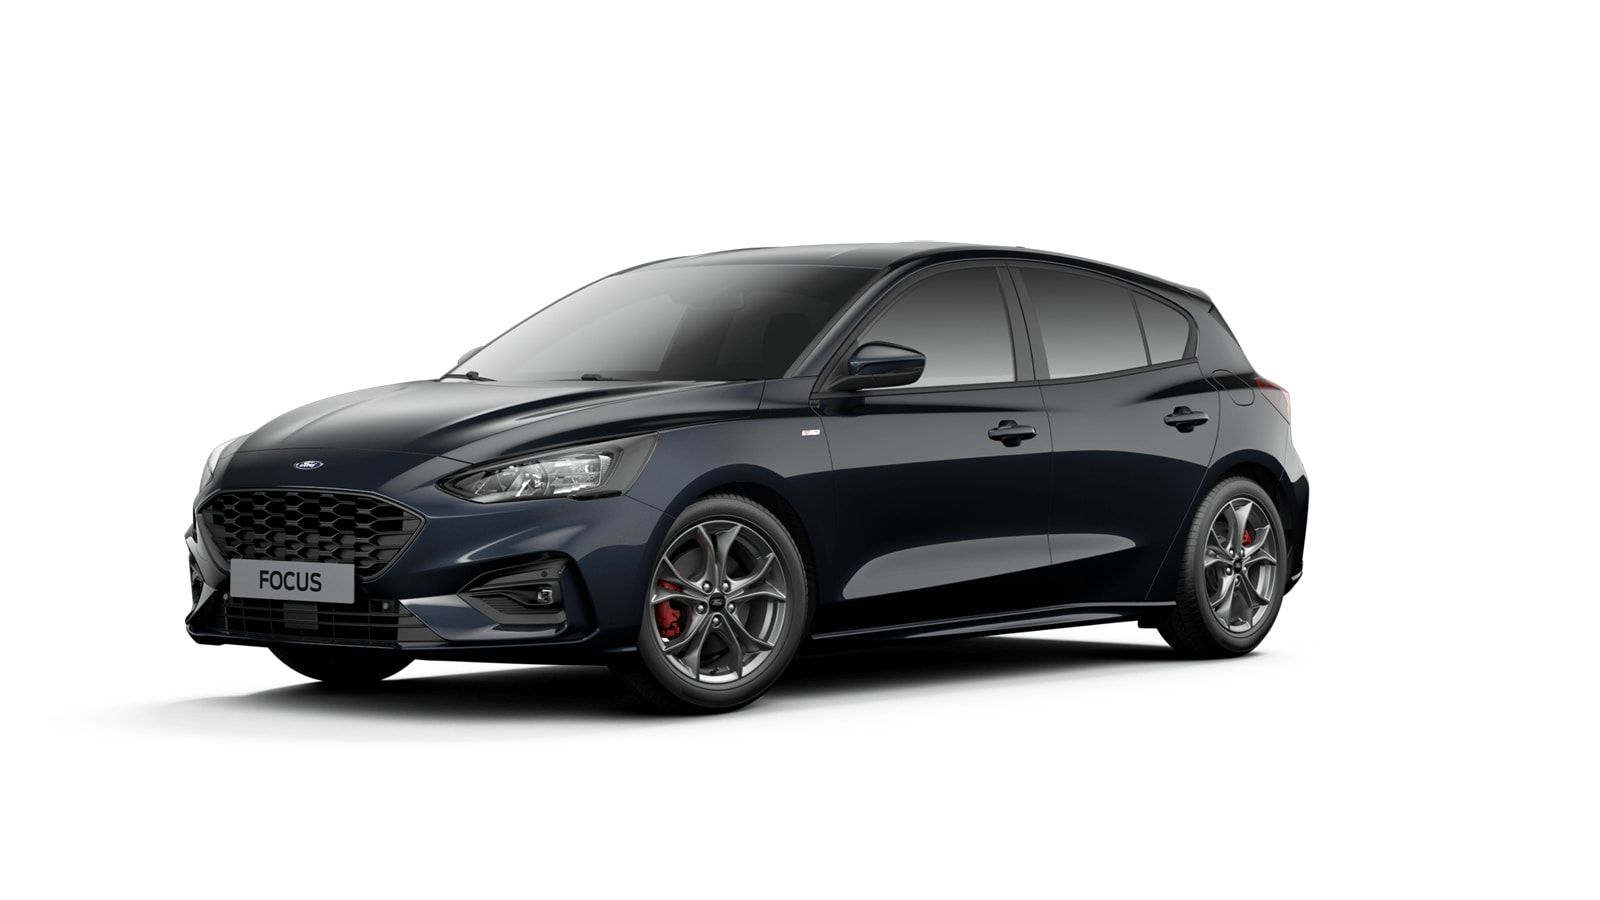 """Nieuw Ford Focus ST-Line X 1.0 EcoBoost 125ps A8 CL FCD - """"Panther Blue"""" Exclusieve metaalkleur 1"""